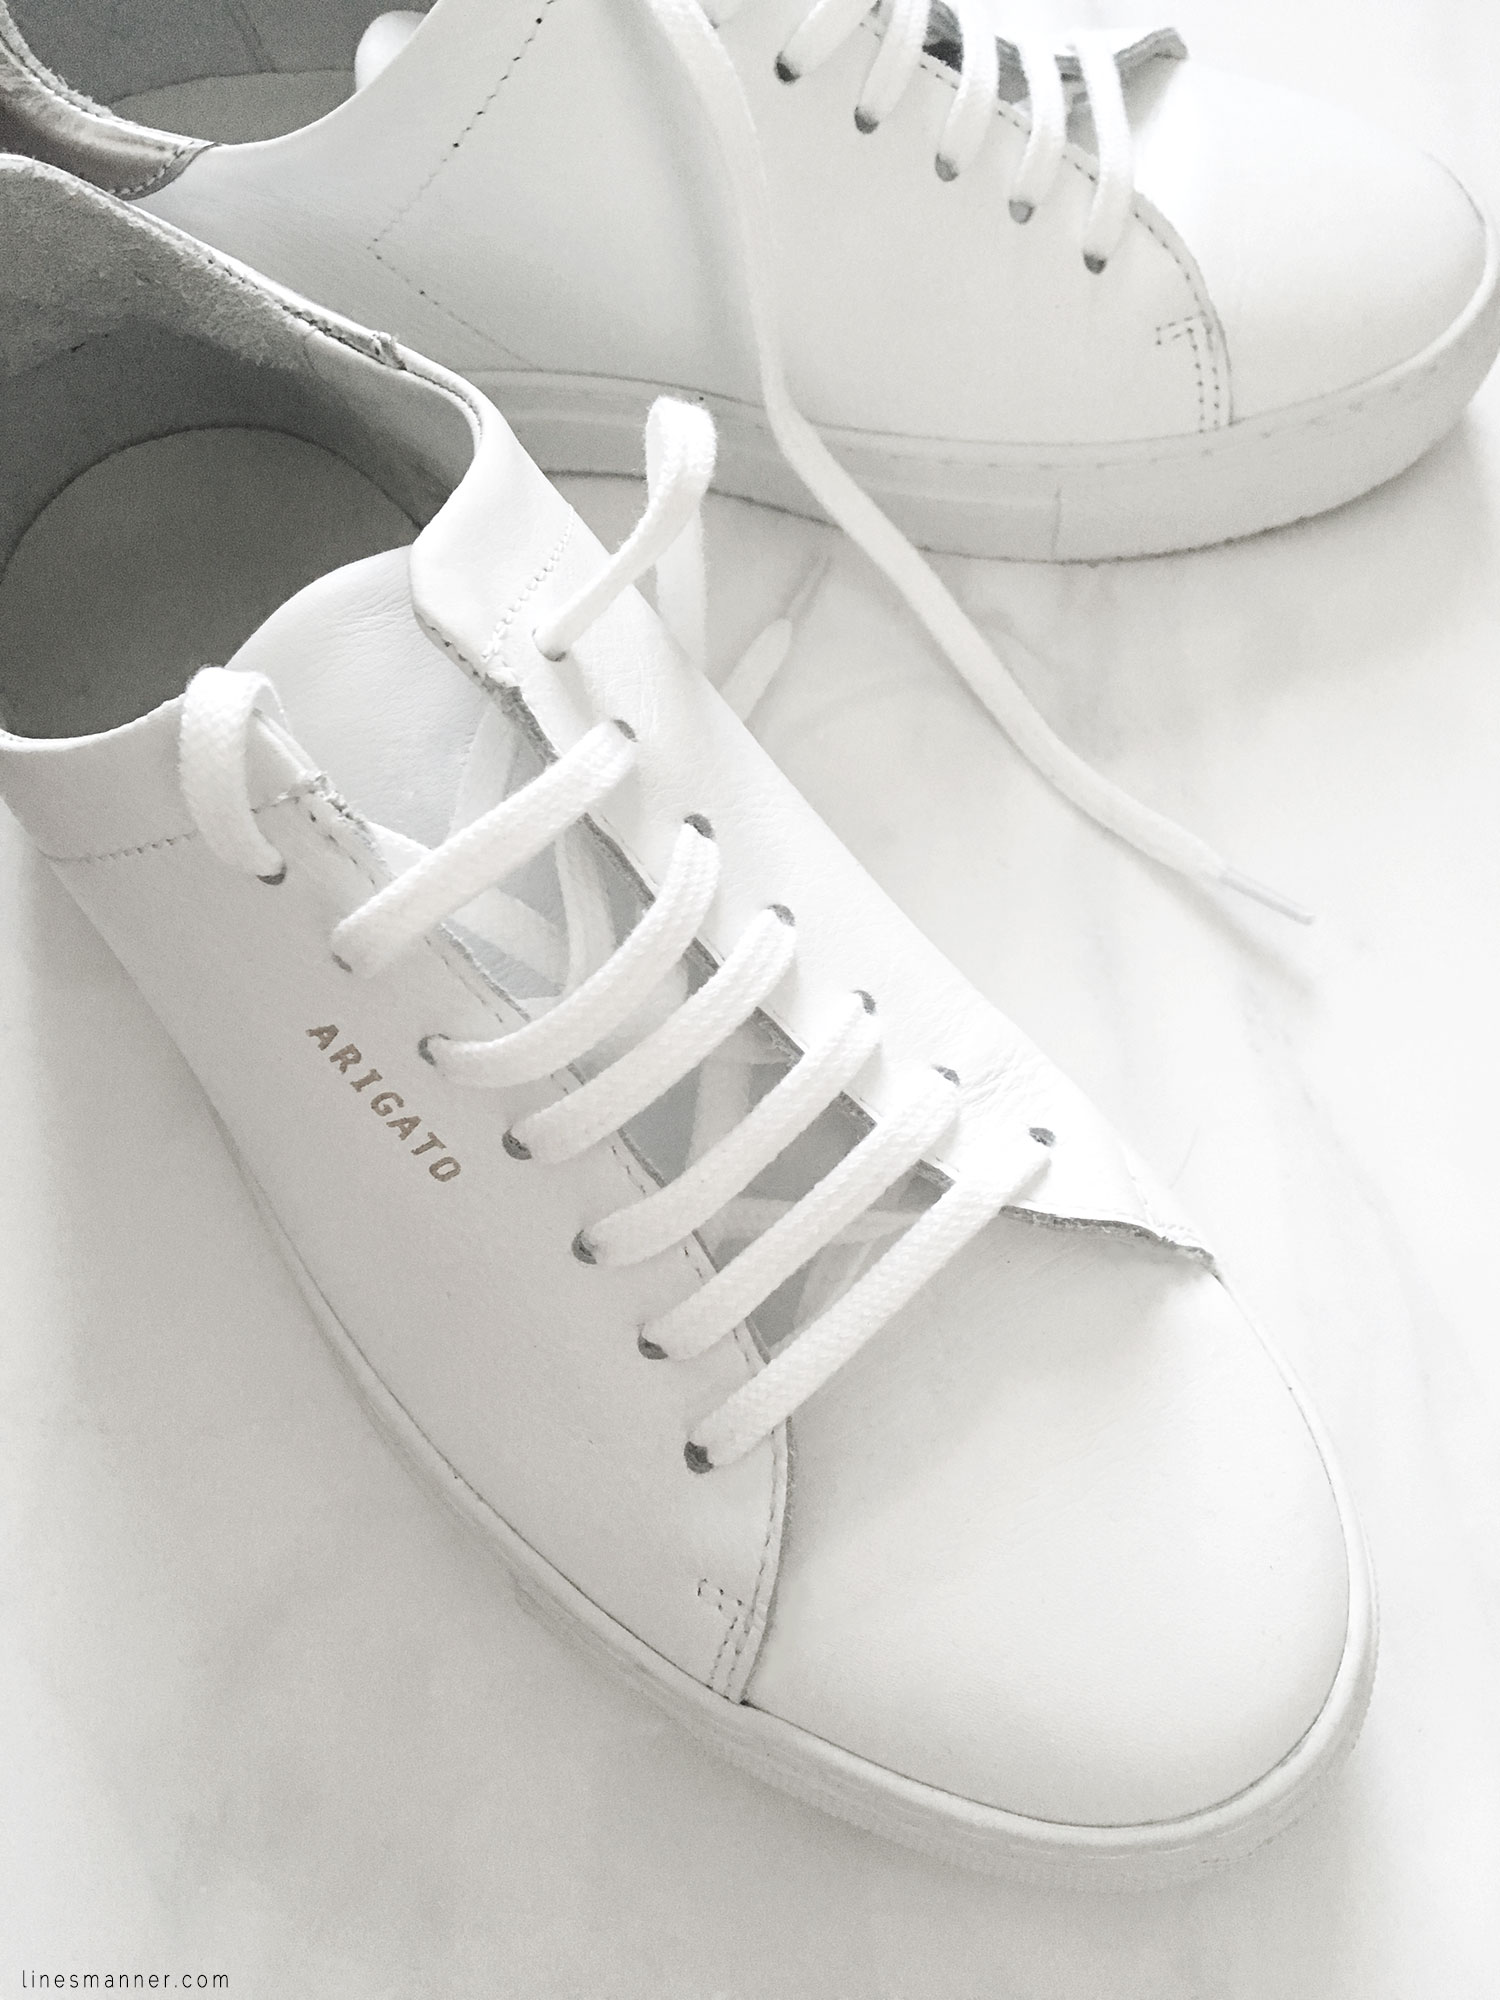 Lines-Manner-Minimal-Axel_Arigato-Sneakers-White-Essentials-Comfort-Luxe-Sporty-Edgy-Timeless-5